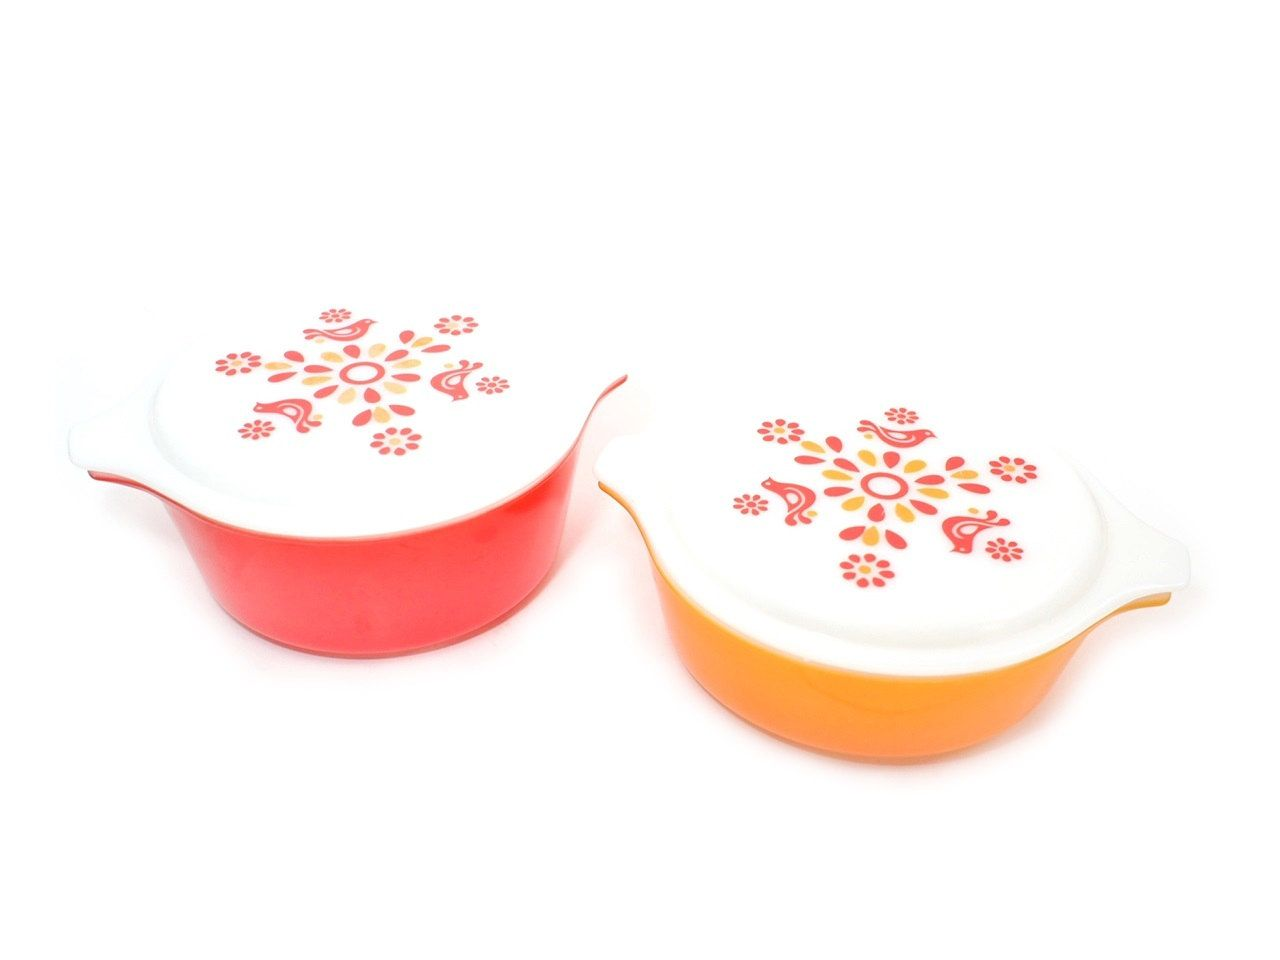 Pyrex Friendship Covered Casserole Set, Pyrex Orange and Red, 1970s ...